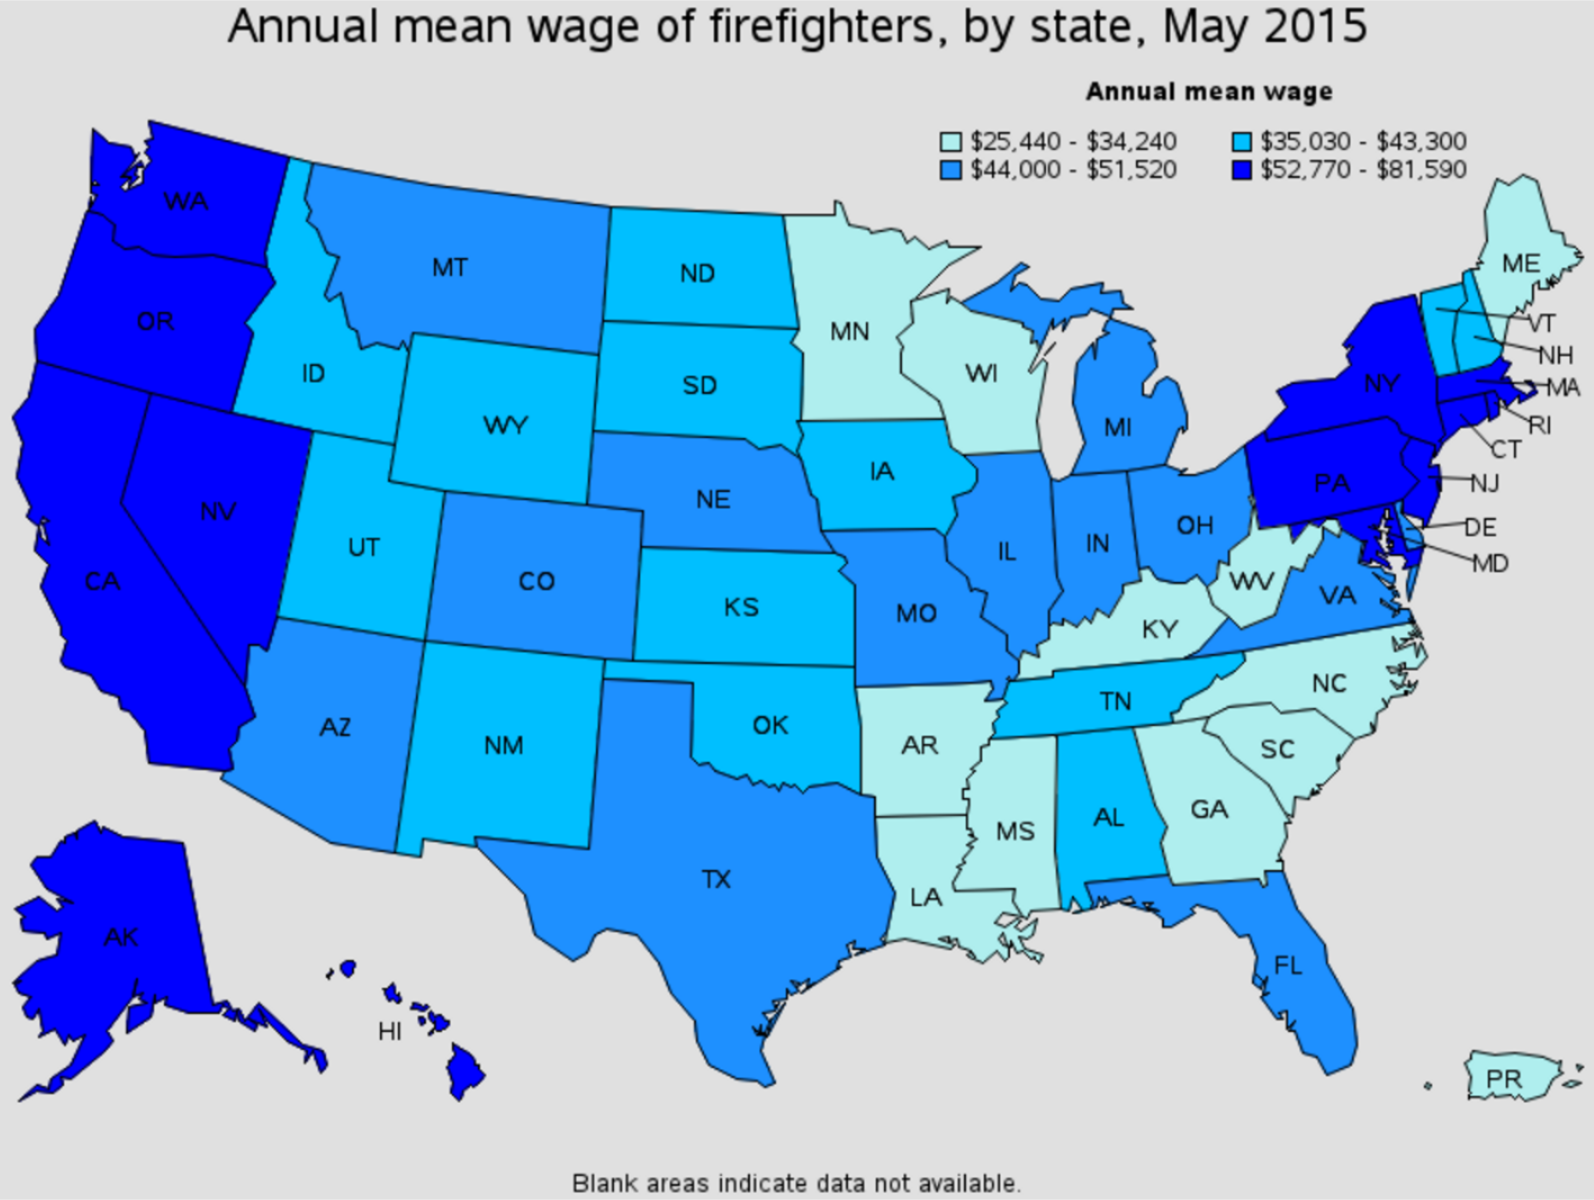 firefighter average salary by state Winamac Indiana